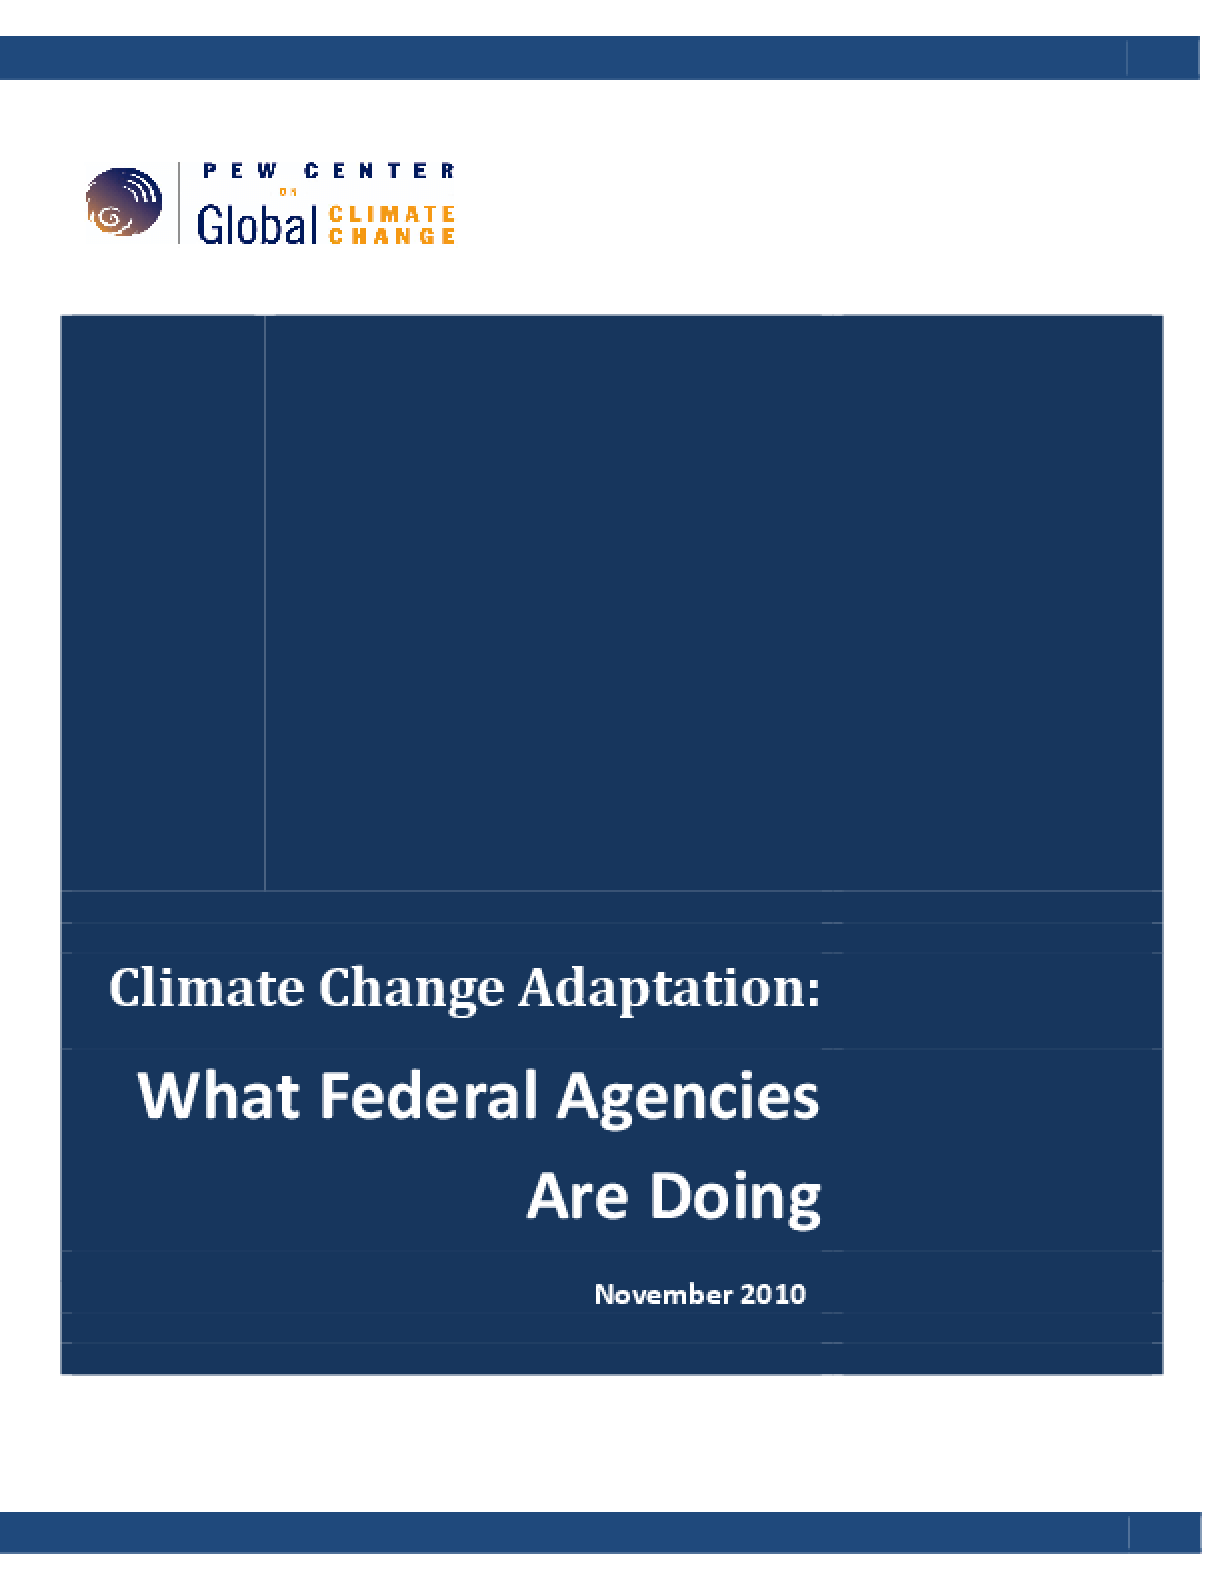 Climate Change Adaptation: What Federal Agencies Are Doing